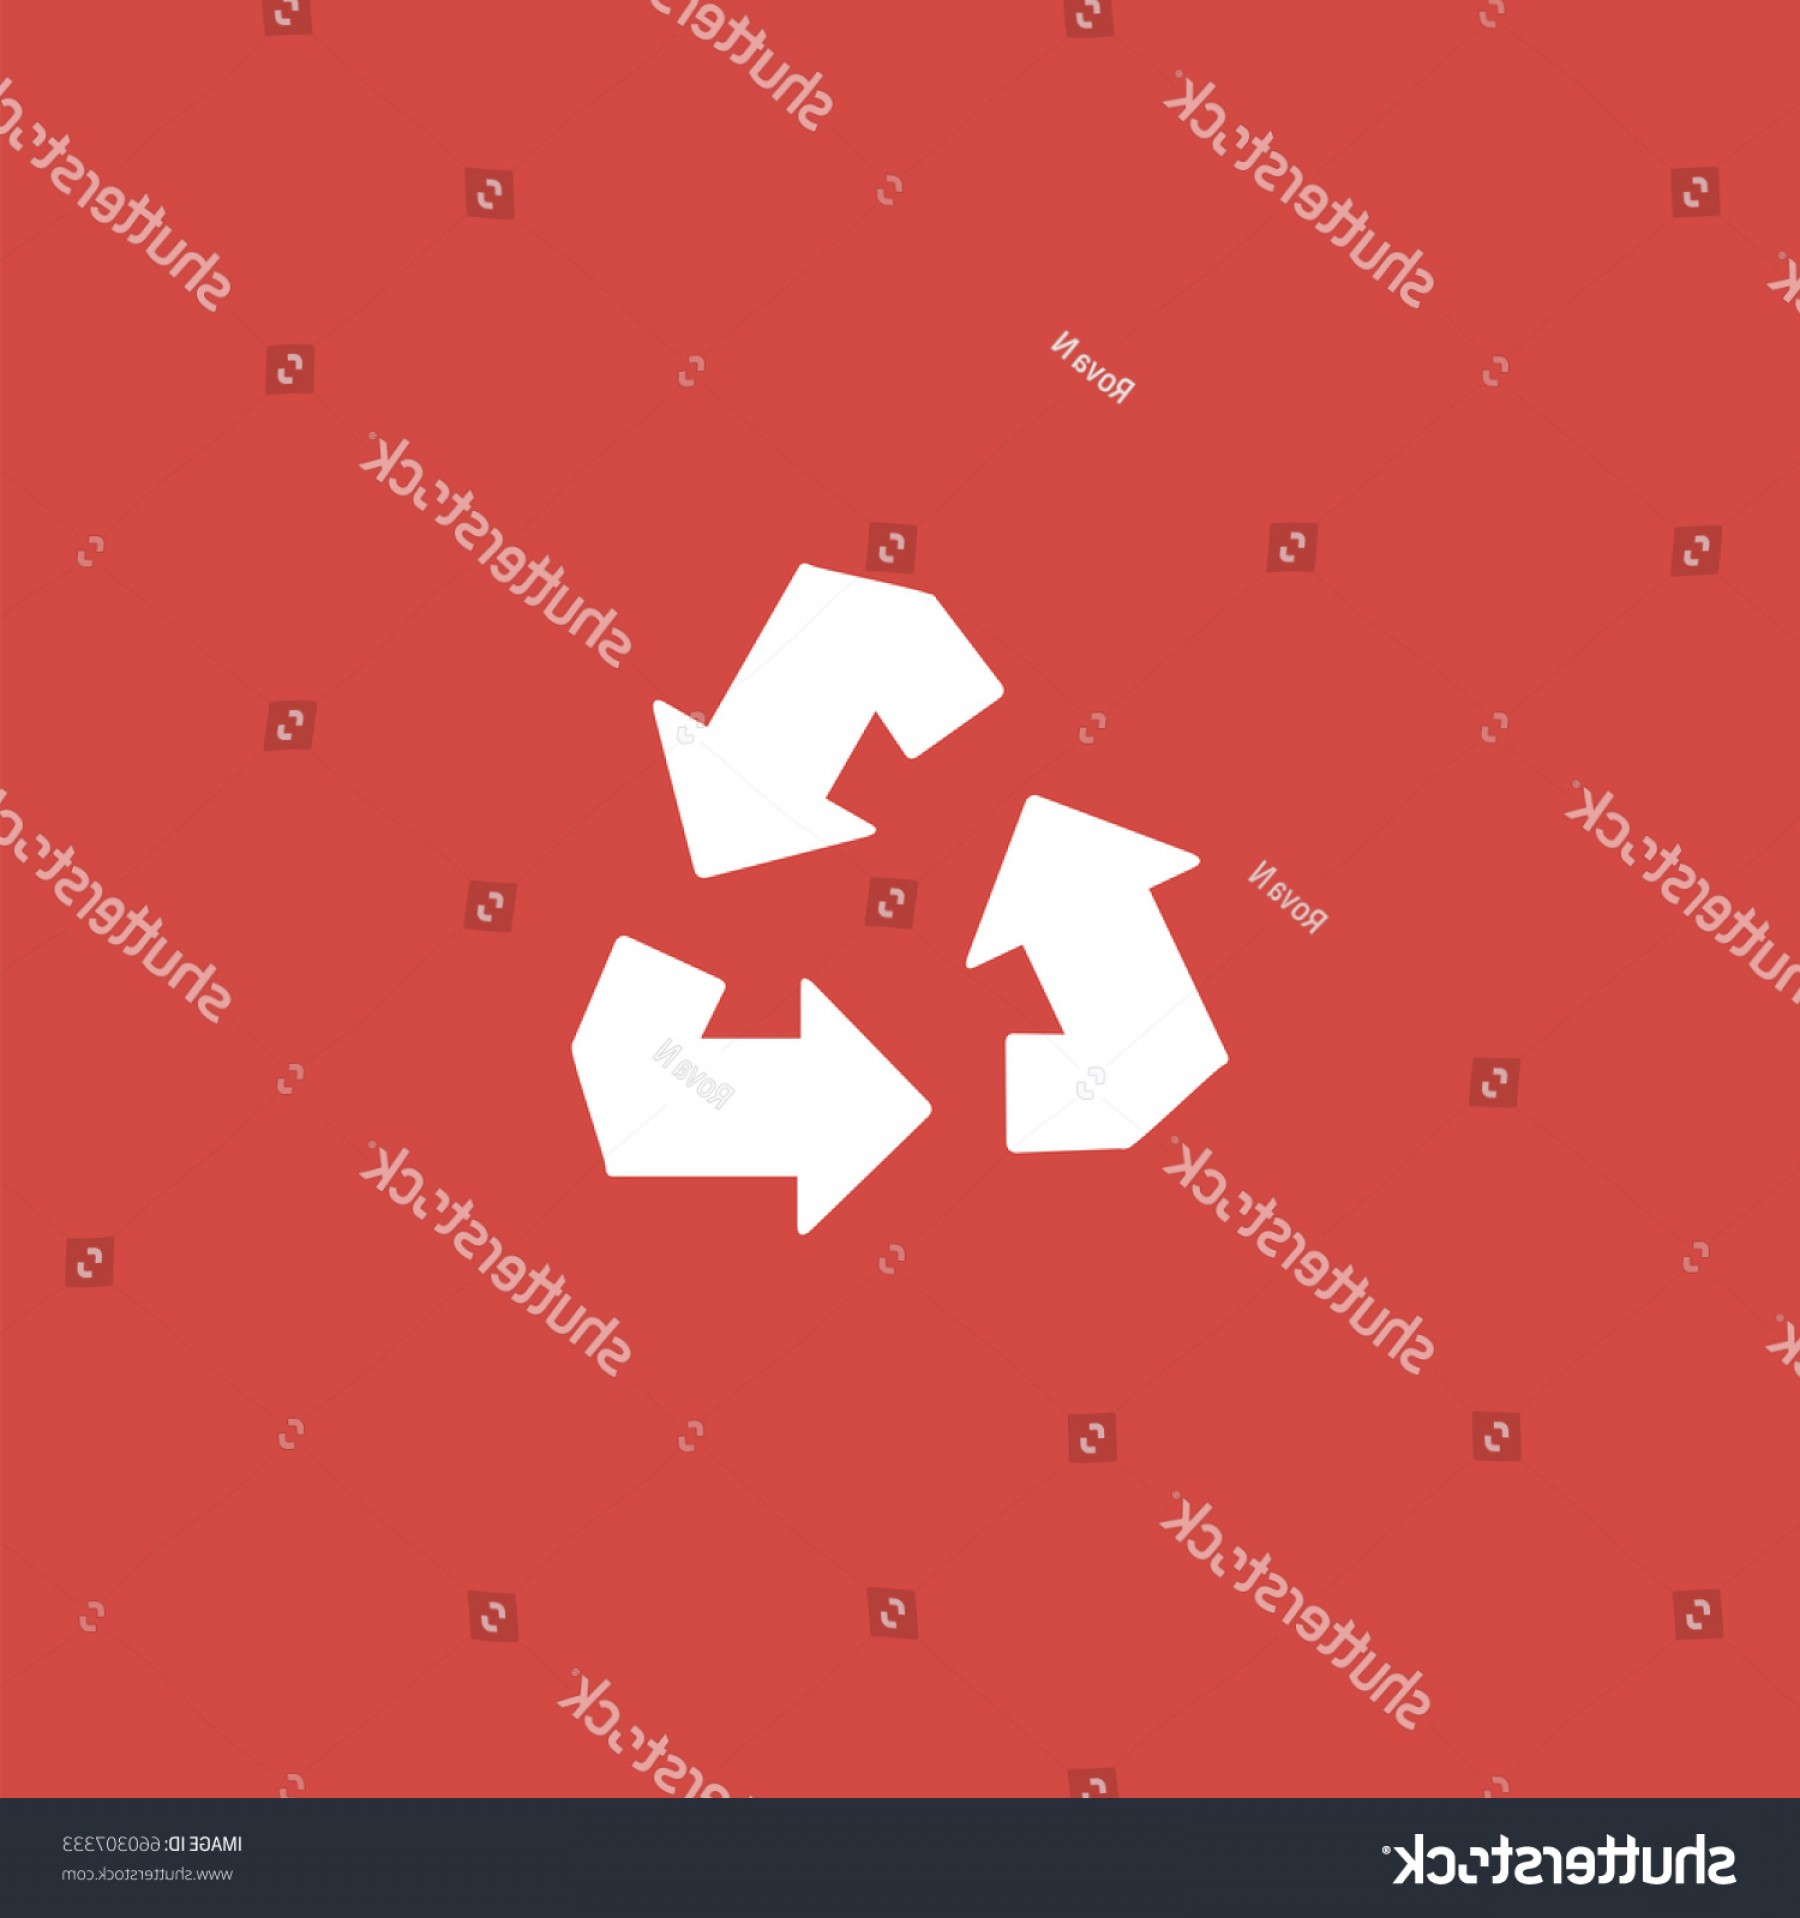 Recycle Icon Vector Red: Recycle Icon Sign Design Red Background